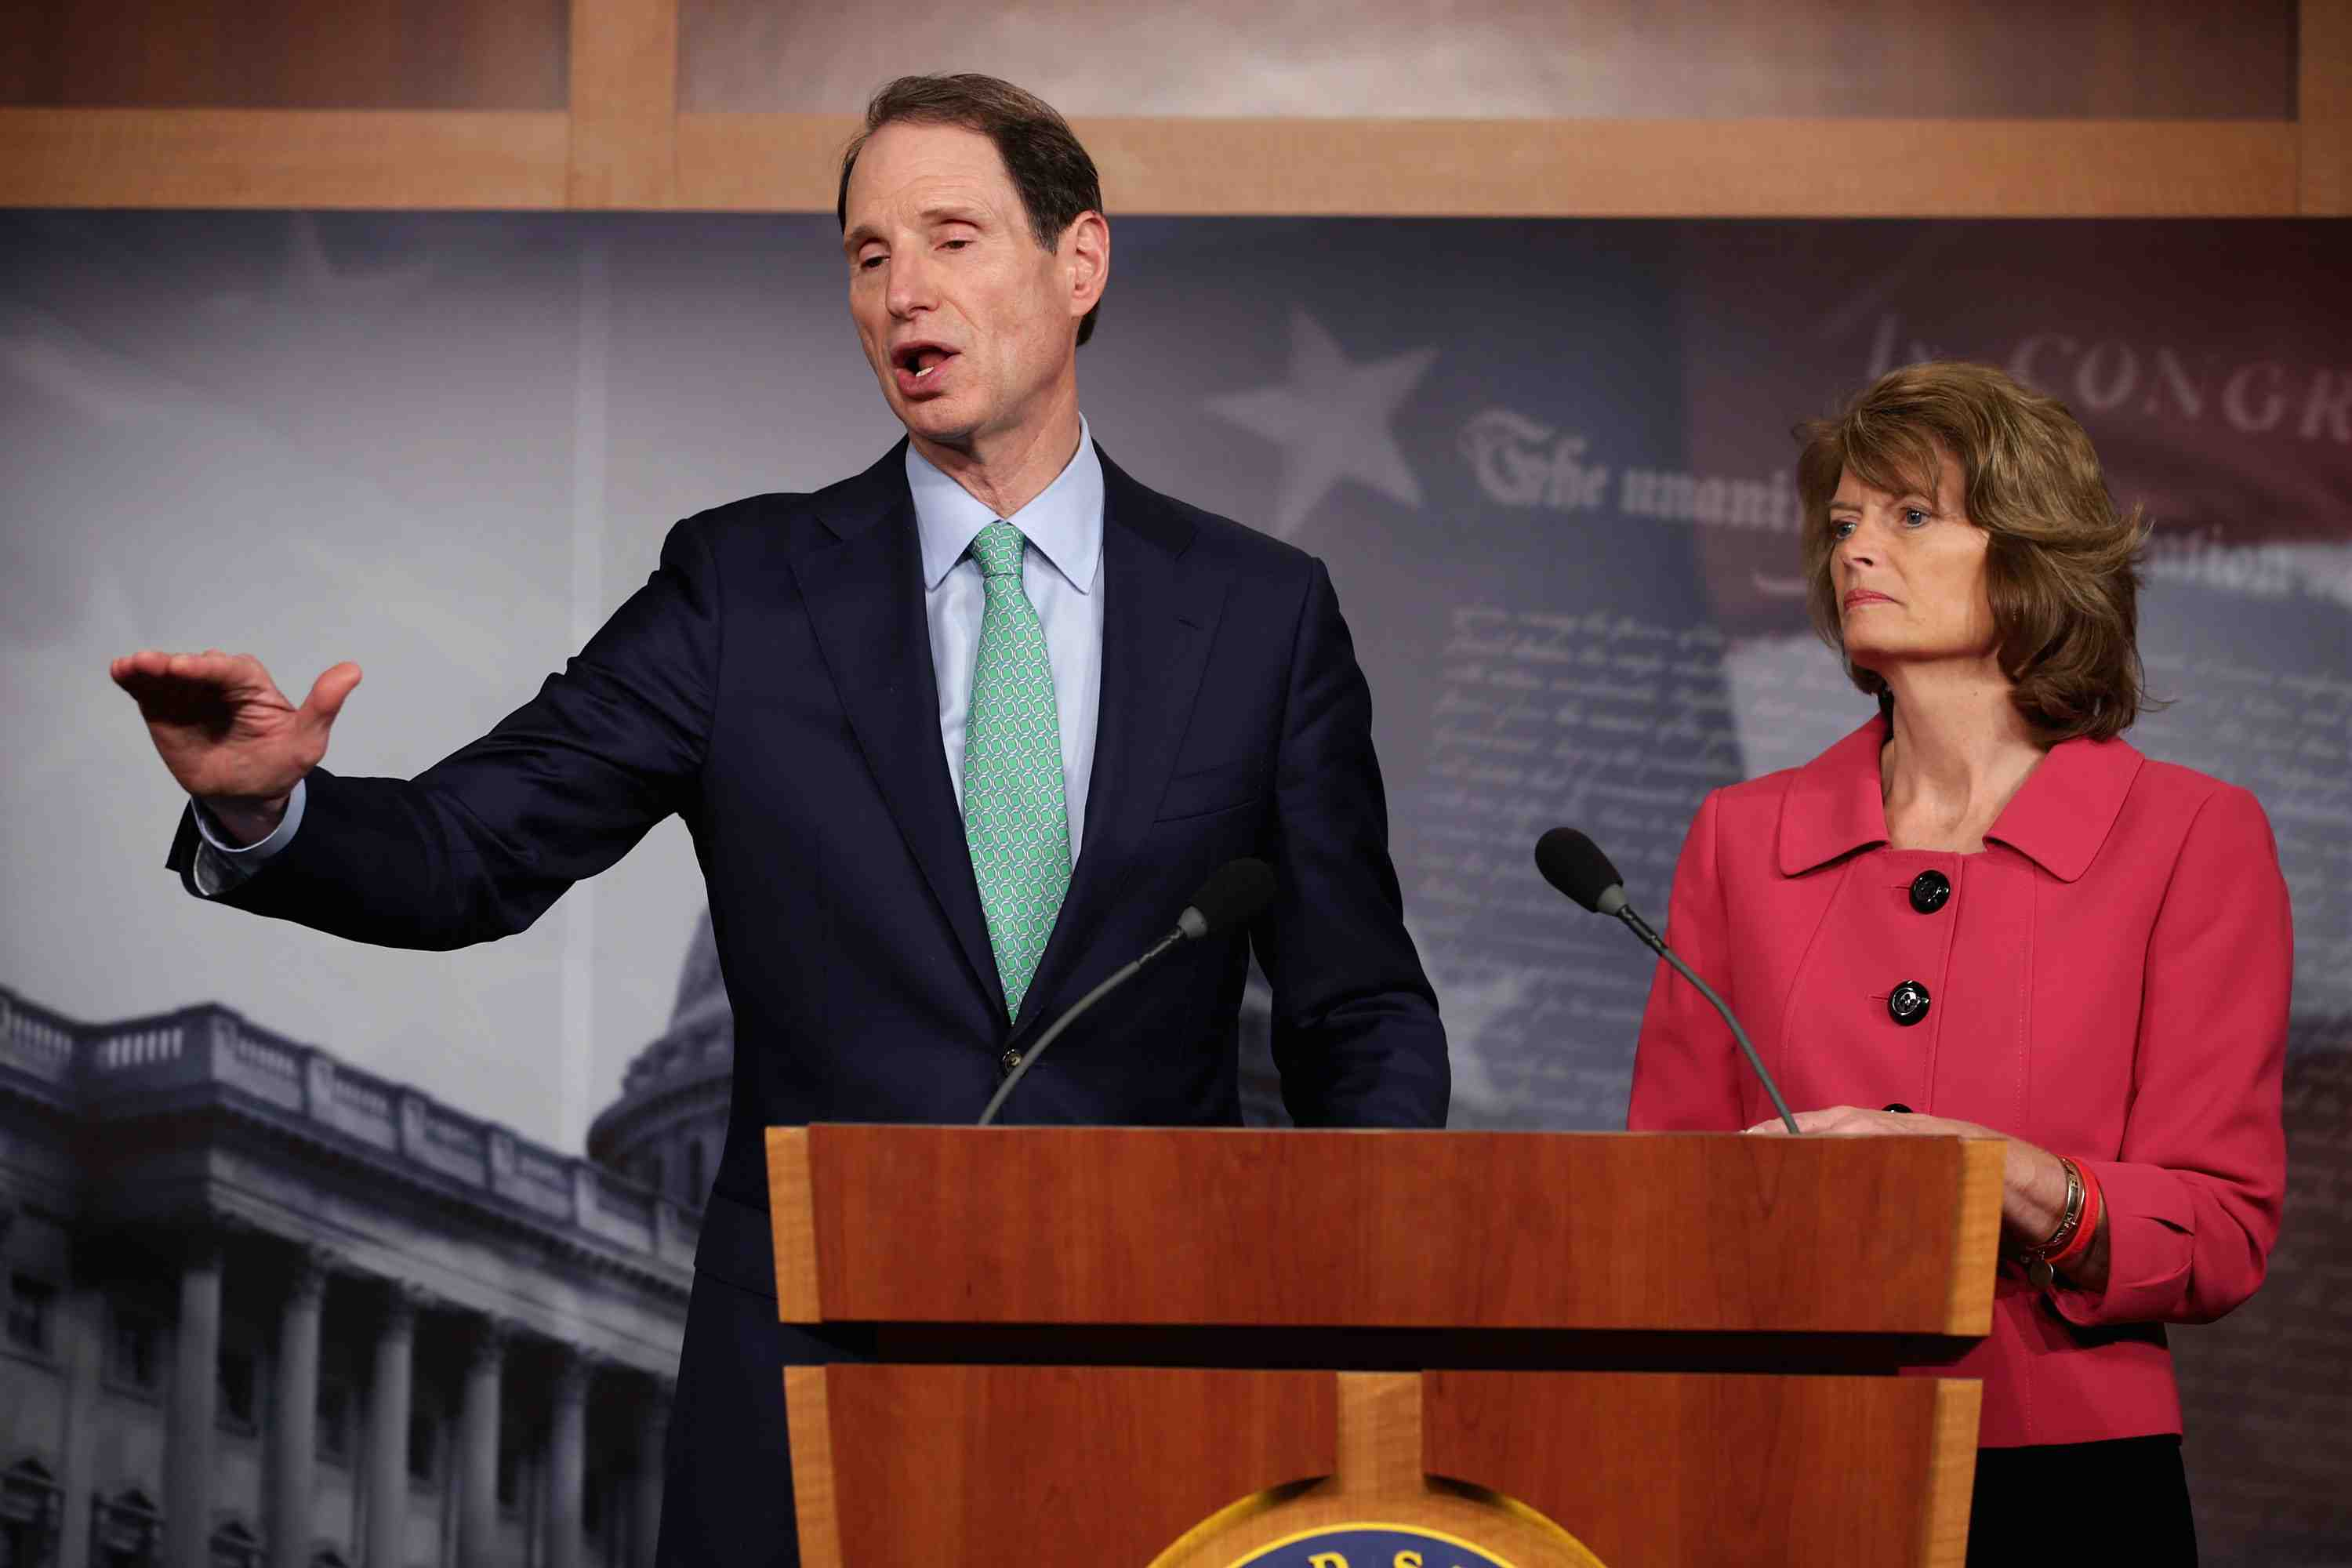 """Sen. Ron Wyden has been saying for years that """"the American people would be absolutely stunned"""" if they knew what kind of surveillance has been authorized by the Obama administration's secret Patriot Act interpretations."""